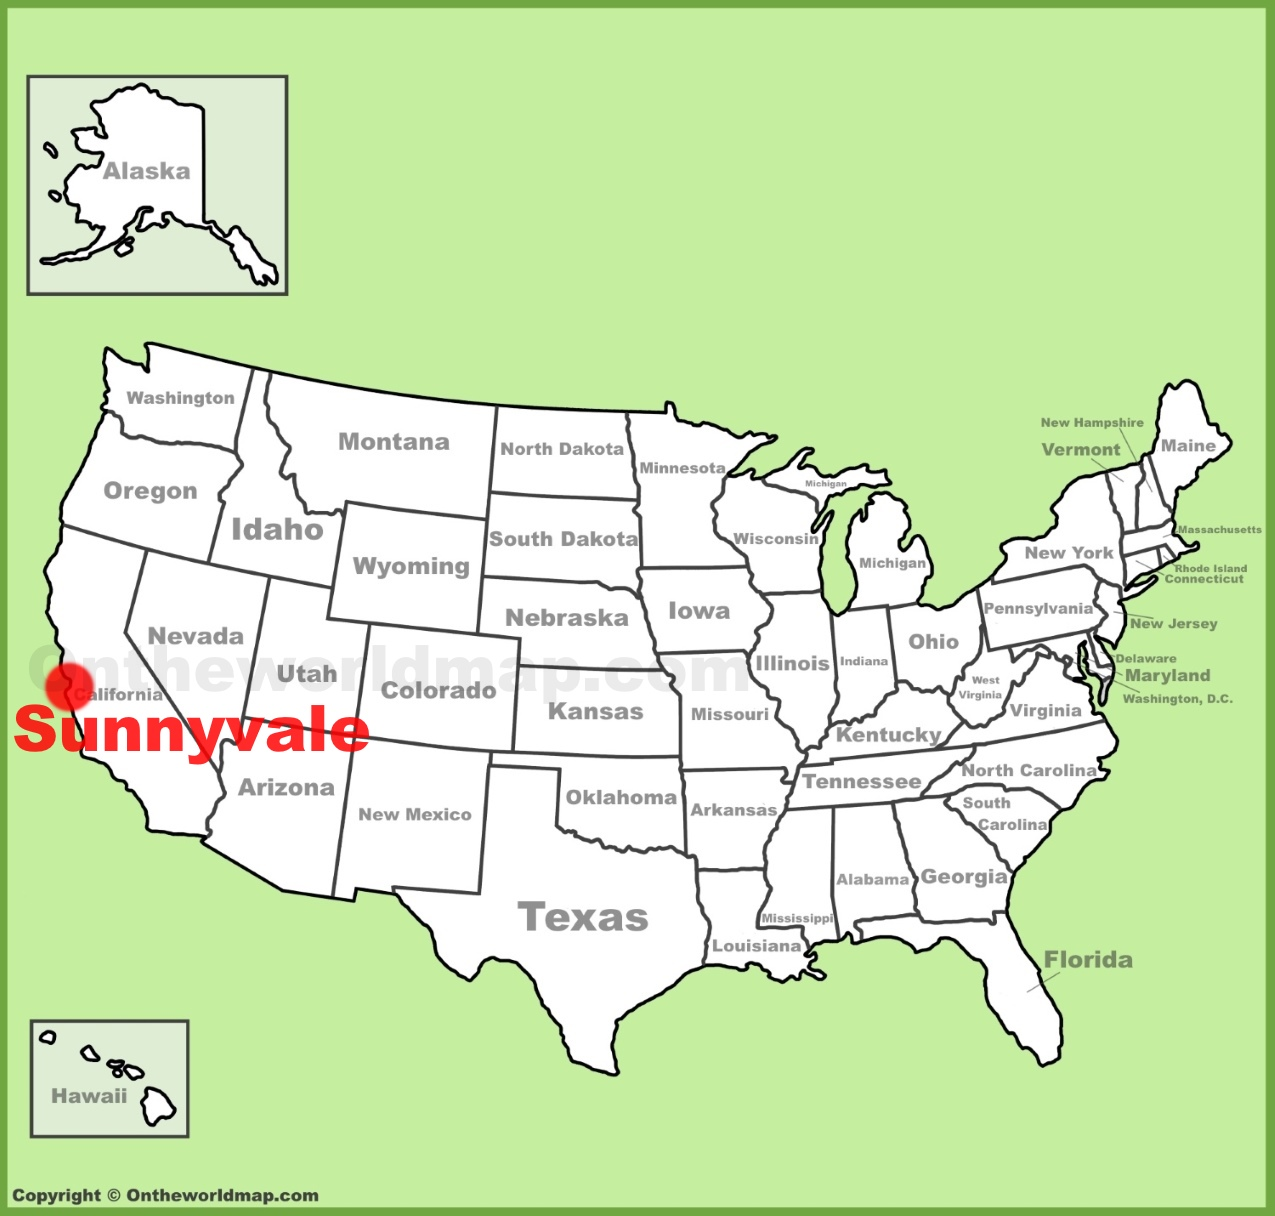 Sunnyvale location on the US Map